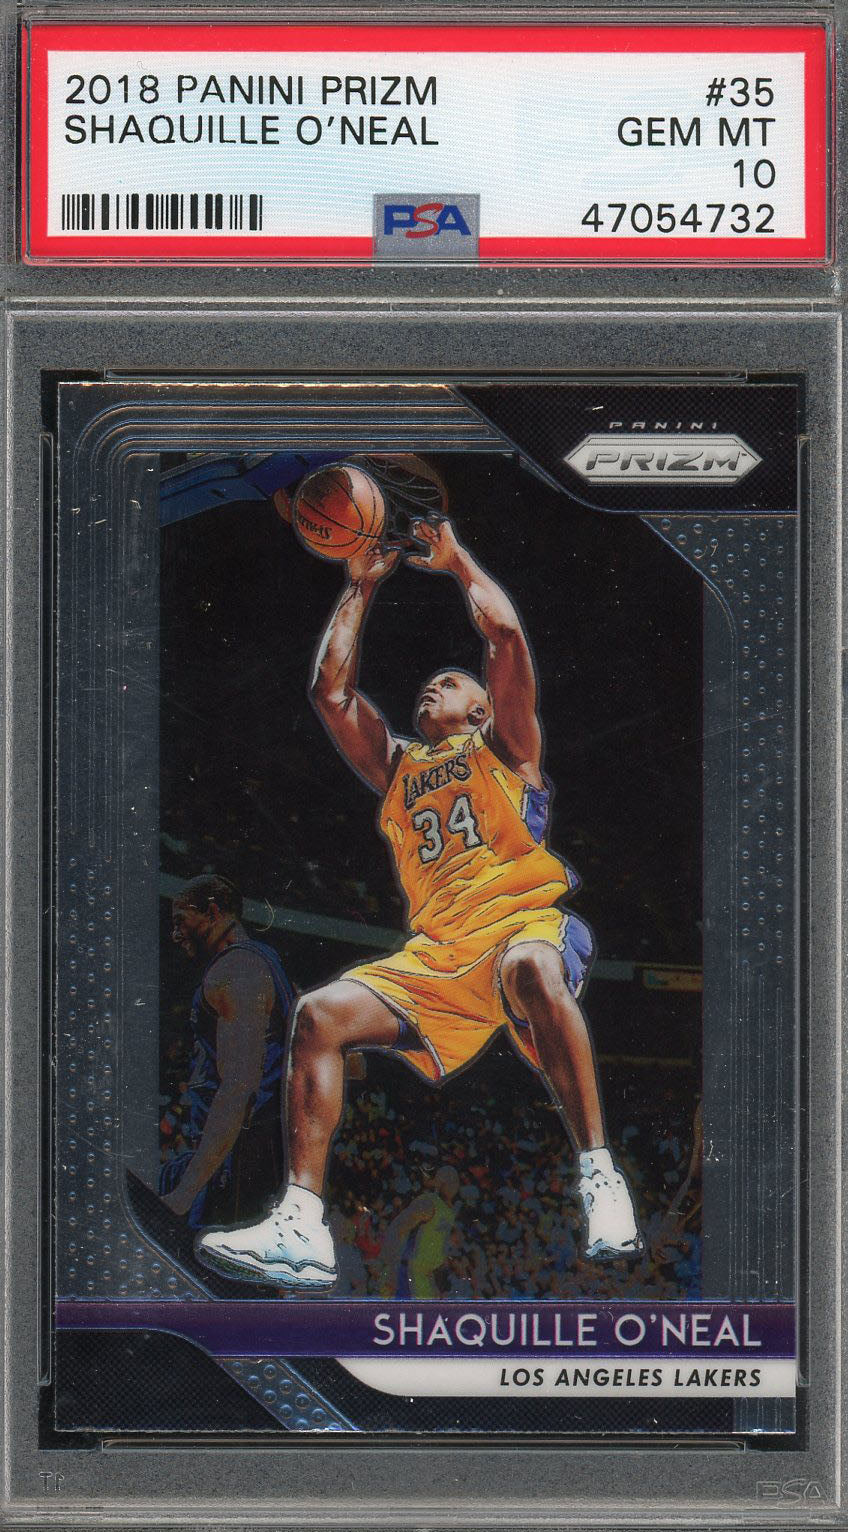 Shaquille O'Neal Los Angeles Lakers 2018 Panini Prizm Basketball Card #35 Graded PSA 10 GEM MINT-Powers Sports Memorabilia